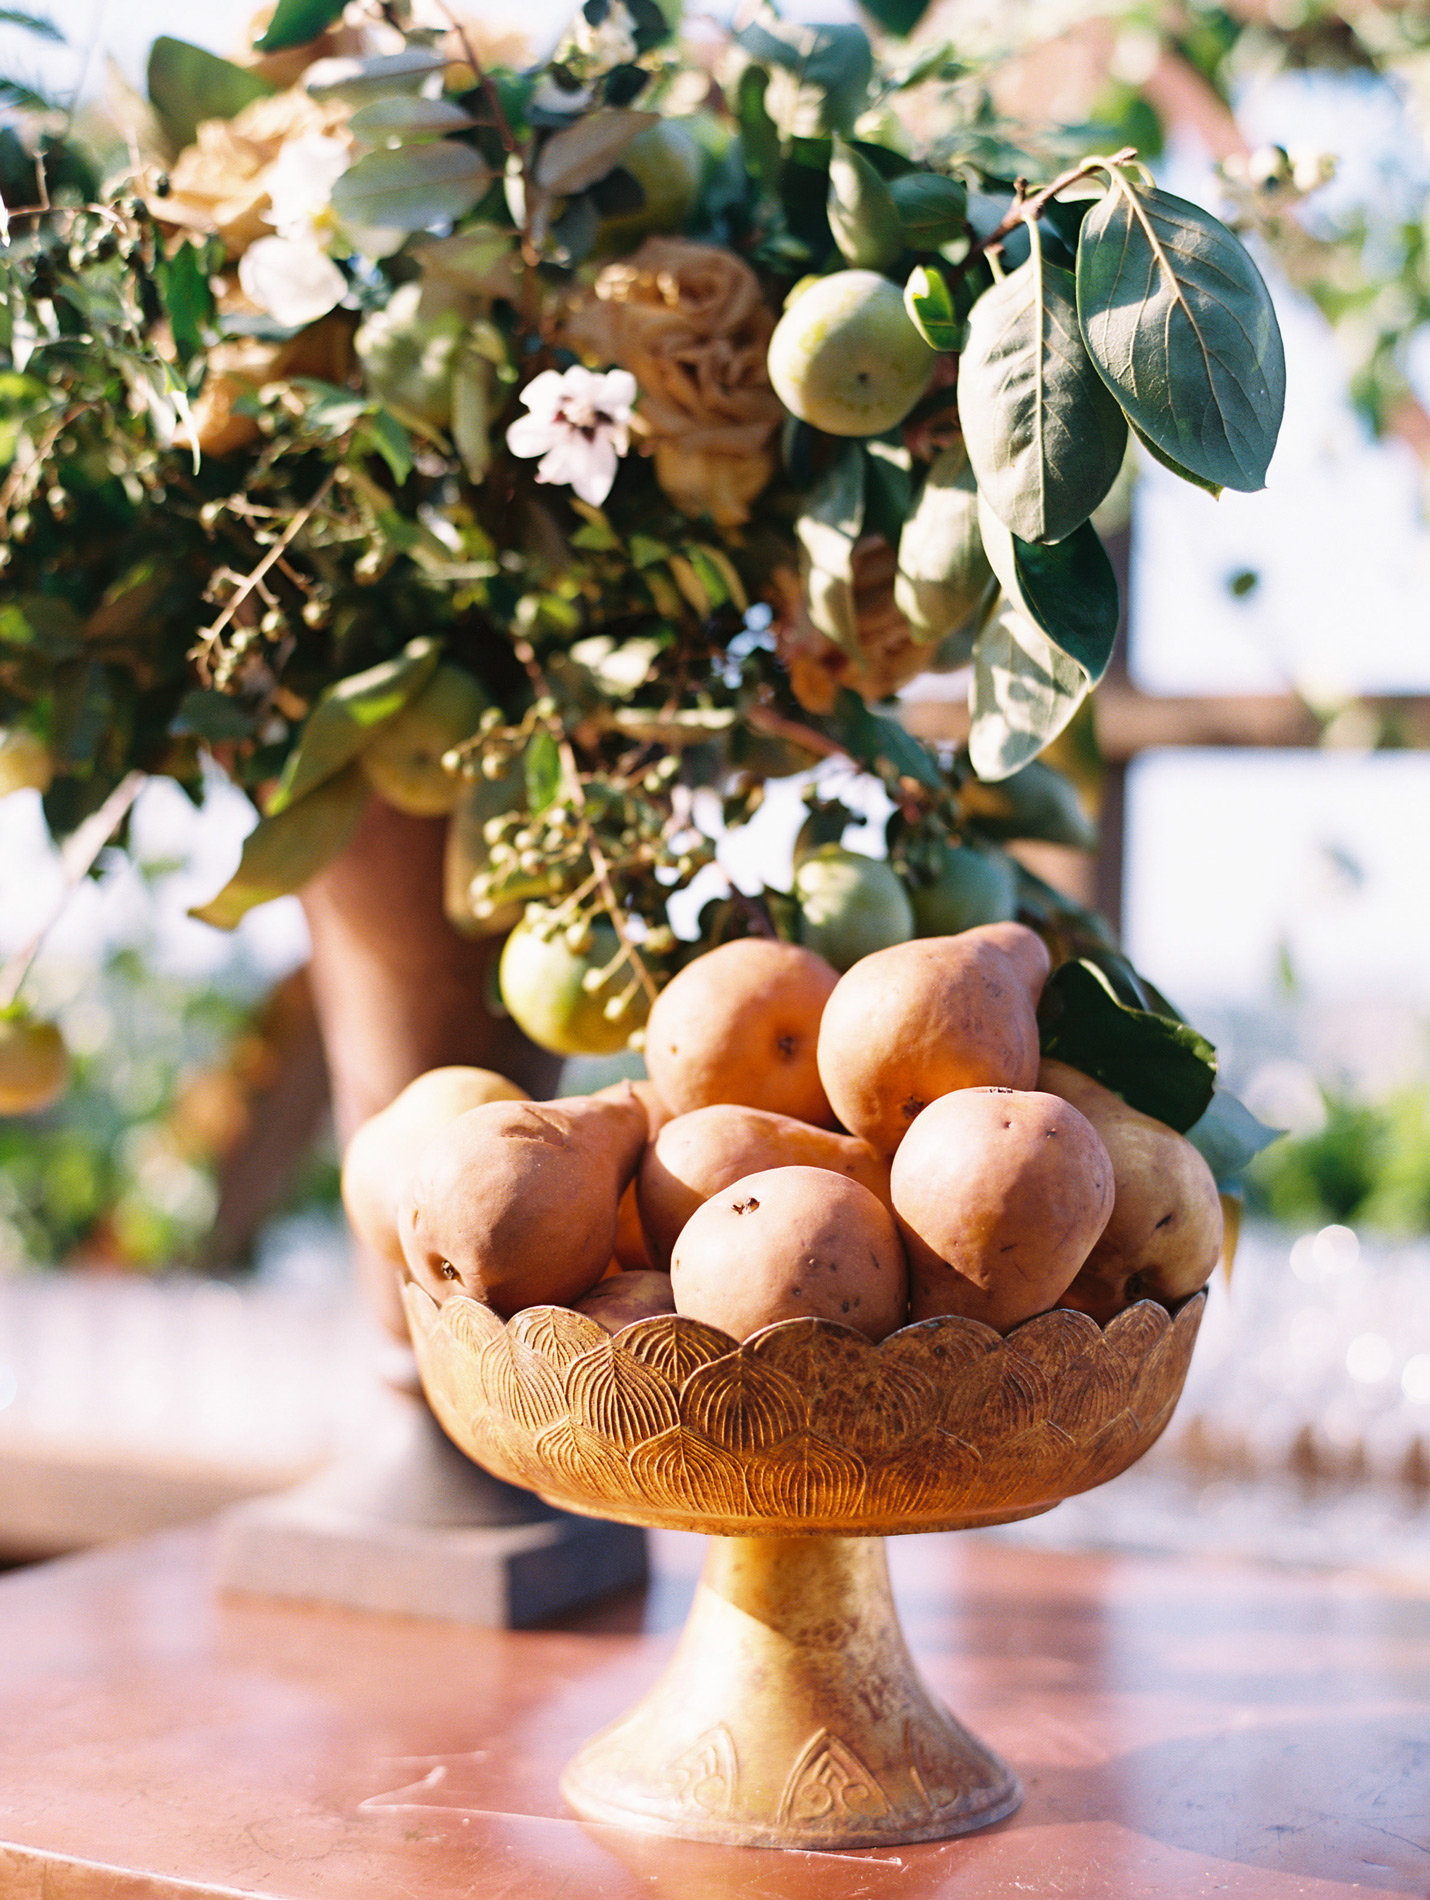 decorative fruit bowl with stand holding pears